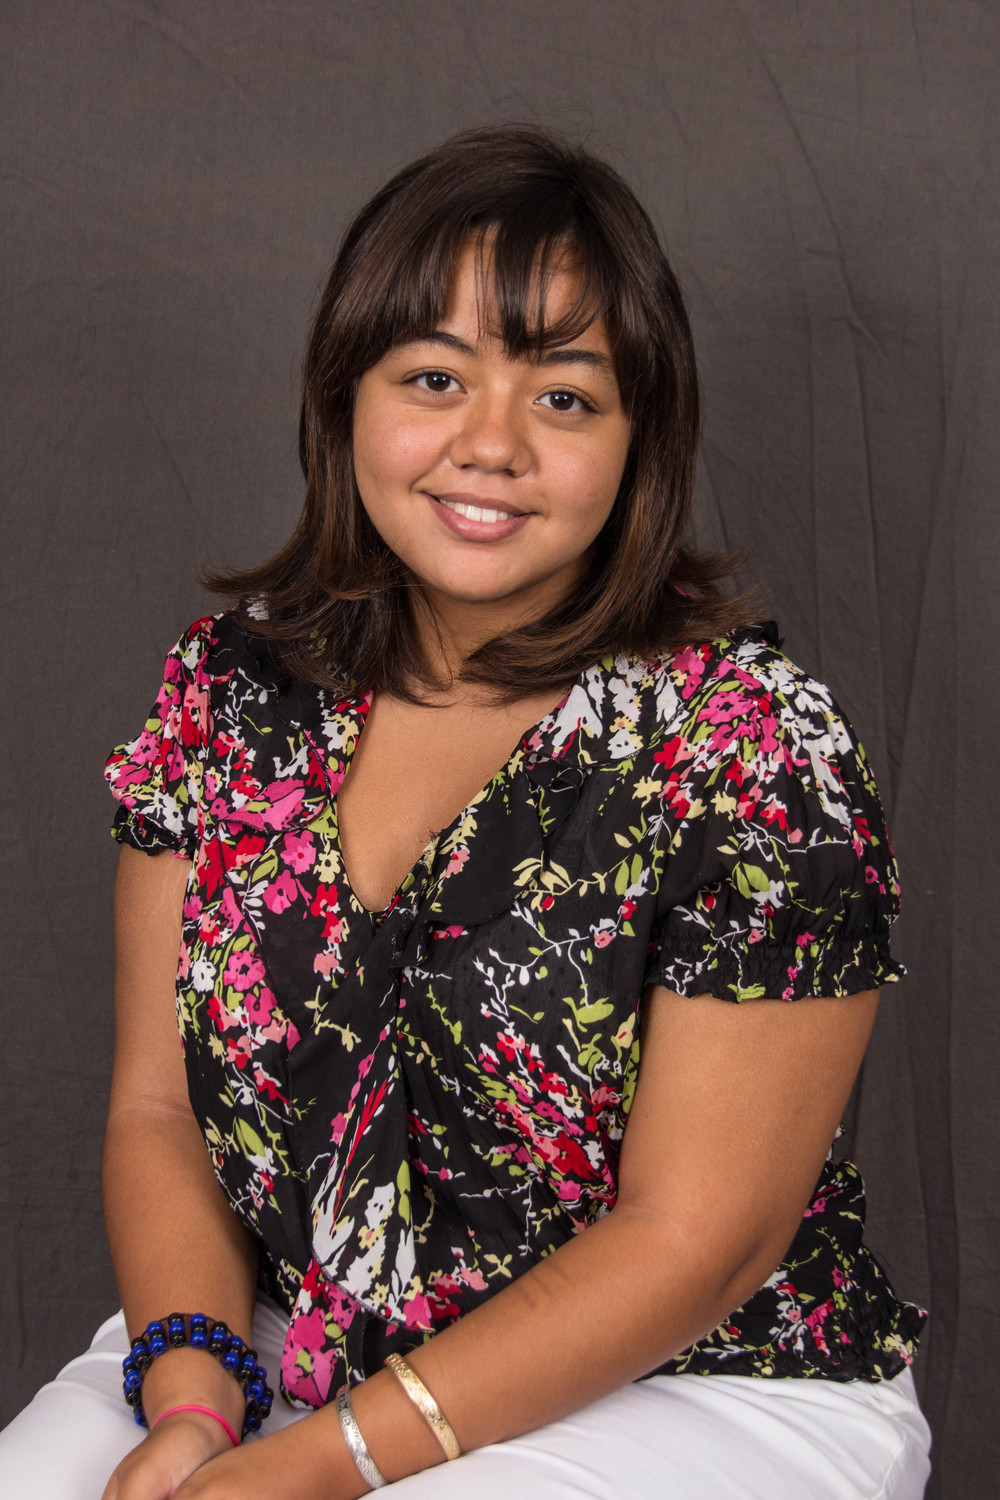 """CTL has showed me how I can change my community it gave me simple steps to aligning my actions with my beliefs. I see myself breaking social barriers."" Star Kaohu-Scorce 